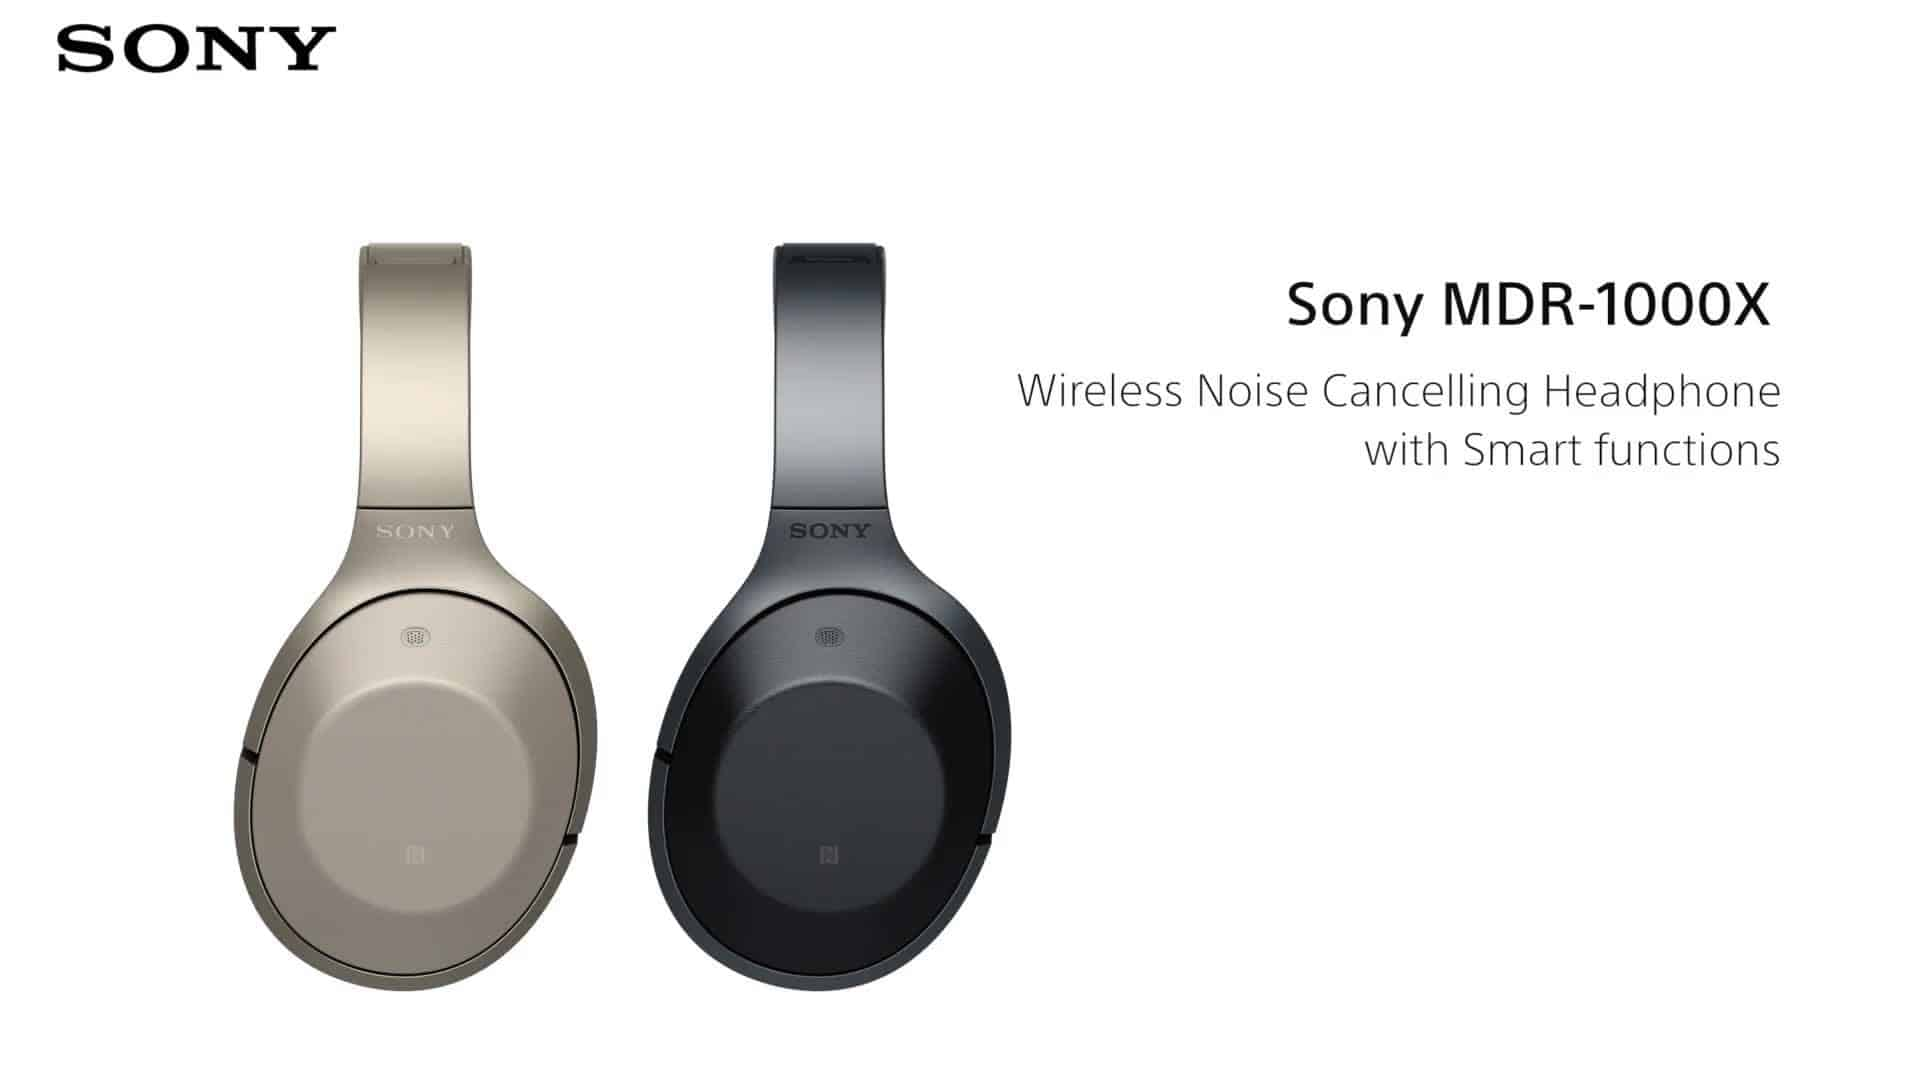 amazon SONY MDR 1000X reviews SONY MDR 1000X on amazon newest SONY MDR 1000X prices of SONY MDR 1000X SONY MDR 1000X deals best deals on SONY MDR 1000X buying a SONY MDR 1000X lastest SONY MDR 1000X what is a SONY MDR 1000X SONY MDR 1000X at amazon where to buy SONY MDR 1000X where can i you get a SONY MDR 1000X online purchase SONY MDR 1000X SONY MDR 1000X sale off SONY MDR 1000X discount cheapest SONY MDR 1000X SONY MDR 1000X for sale SONY MDR 1000X products SONY MDR 1000X tutorial SONY MDR 1000X specification SONY MDR 1000X features SONY MDR 1000X test SONY MDR 1000X series SONY MDR 1000X service manual SONY MDR 1000X instructions SONY MDR 1000X accessories ambient sound sony mdr 1000x auriculares sony mdr 1000x avis sony mdr 1000x audifonos sony mdr 1000x argos sony mdr-1000x application sony mdr 1000x anleitung sony mdr 1000x ath m50x vs sony mdr 1000x ath-dsr7bt vs sony mdr 1000x amazon uk sony mdr 1000x buy sony mdr-1000x bose qc35 ou sony mdr 1000x bedienungsanleitung sony mdr 1000x bose quietcomfort 35 vs sony mdr-1000x reddit beats solo 3 vs sony mdr 1000x beats studio wireless vs sony mdr 1000x bose qc25 vs sony mdr-1000x bose vs sony mdr 1000x bose quietcomfort 35 sony mdr-1000x black friday sony mdr 1000x casque sony mdr 1000x charging sony mdr 1000x compare bose qc35 and sony mdr-1000x currys sony mdr 1000x connect sony mdr 1000x to iphone cuffie sony mdr 1000x connect sony mdr 1000x connect sony mdr 1000x to ps4 costco sony mdr-1000x comprar sony mdr 1000x difference between sony mdr-1000x and wh-1000xm2 difference between sony mdr 1000x and 1000xm2 does sony mdr 1000x work with ps4 dixons travel sony mdr 1000x denon ah-gc20 vs sony mdr-1000x does sony mdr 1000x have a mic danh gia sony mdr 1000x digitec sony mdr 1000x difference between sony mdr 1000x deals on sony mdr 1000x elkjøp sony mdr 1000x el corte ingles sony mdr 1000x elgiganten sony mdr 1000x essai sony mdr-1000x equalizer sony mdr 1000x ersatzohrpolster sony mdr 1000x earpads sony mdr 1000